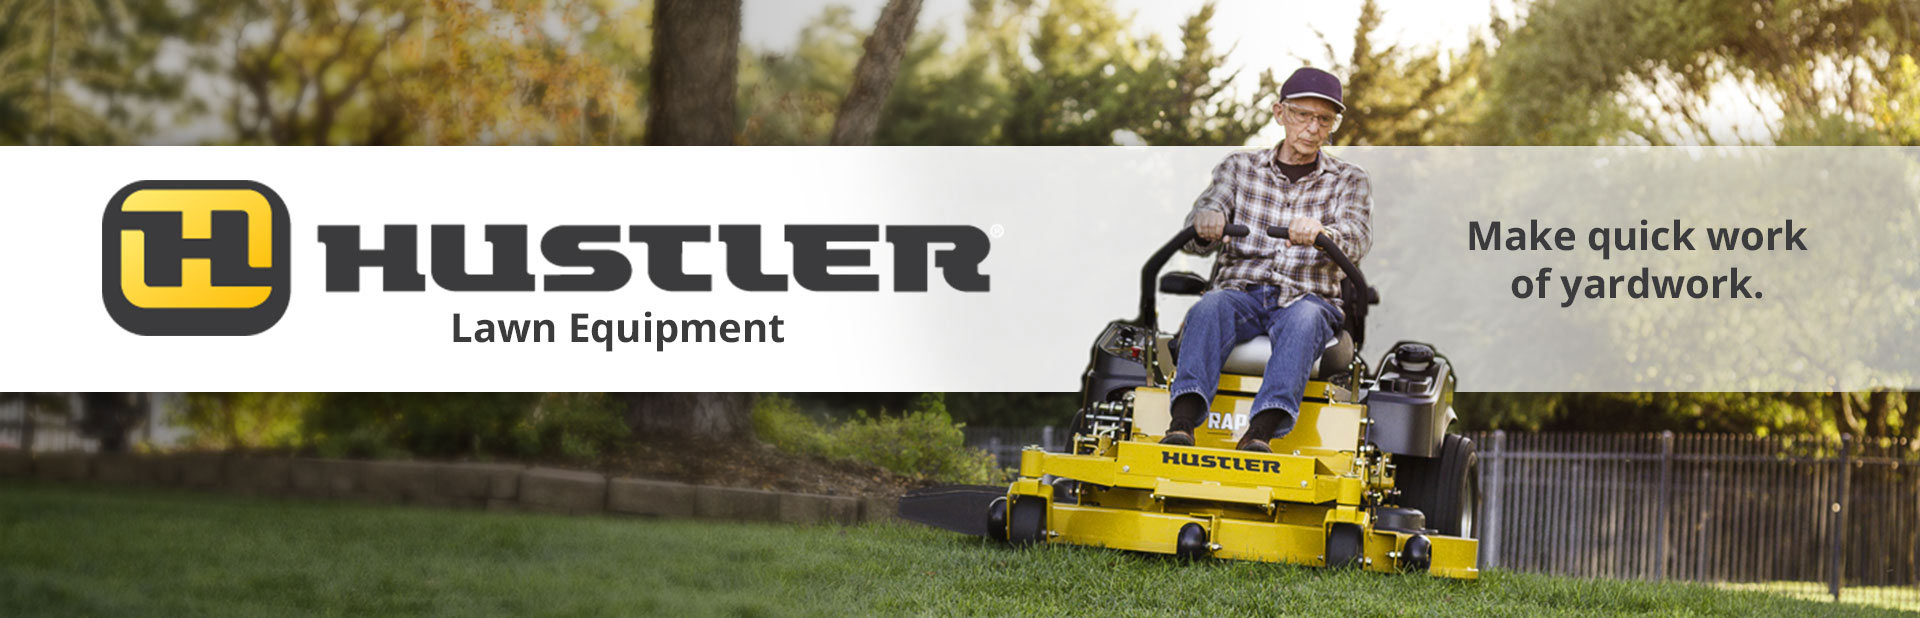 Hustler Lawn Mowers: Click here to view the models.